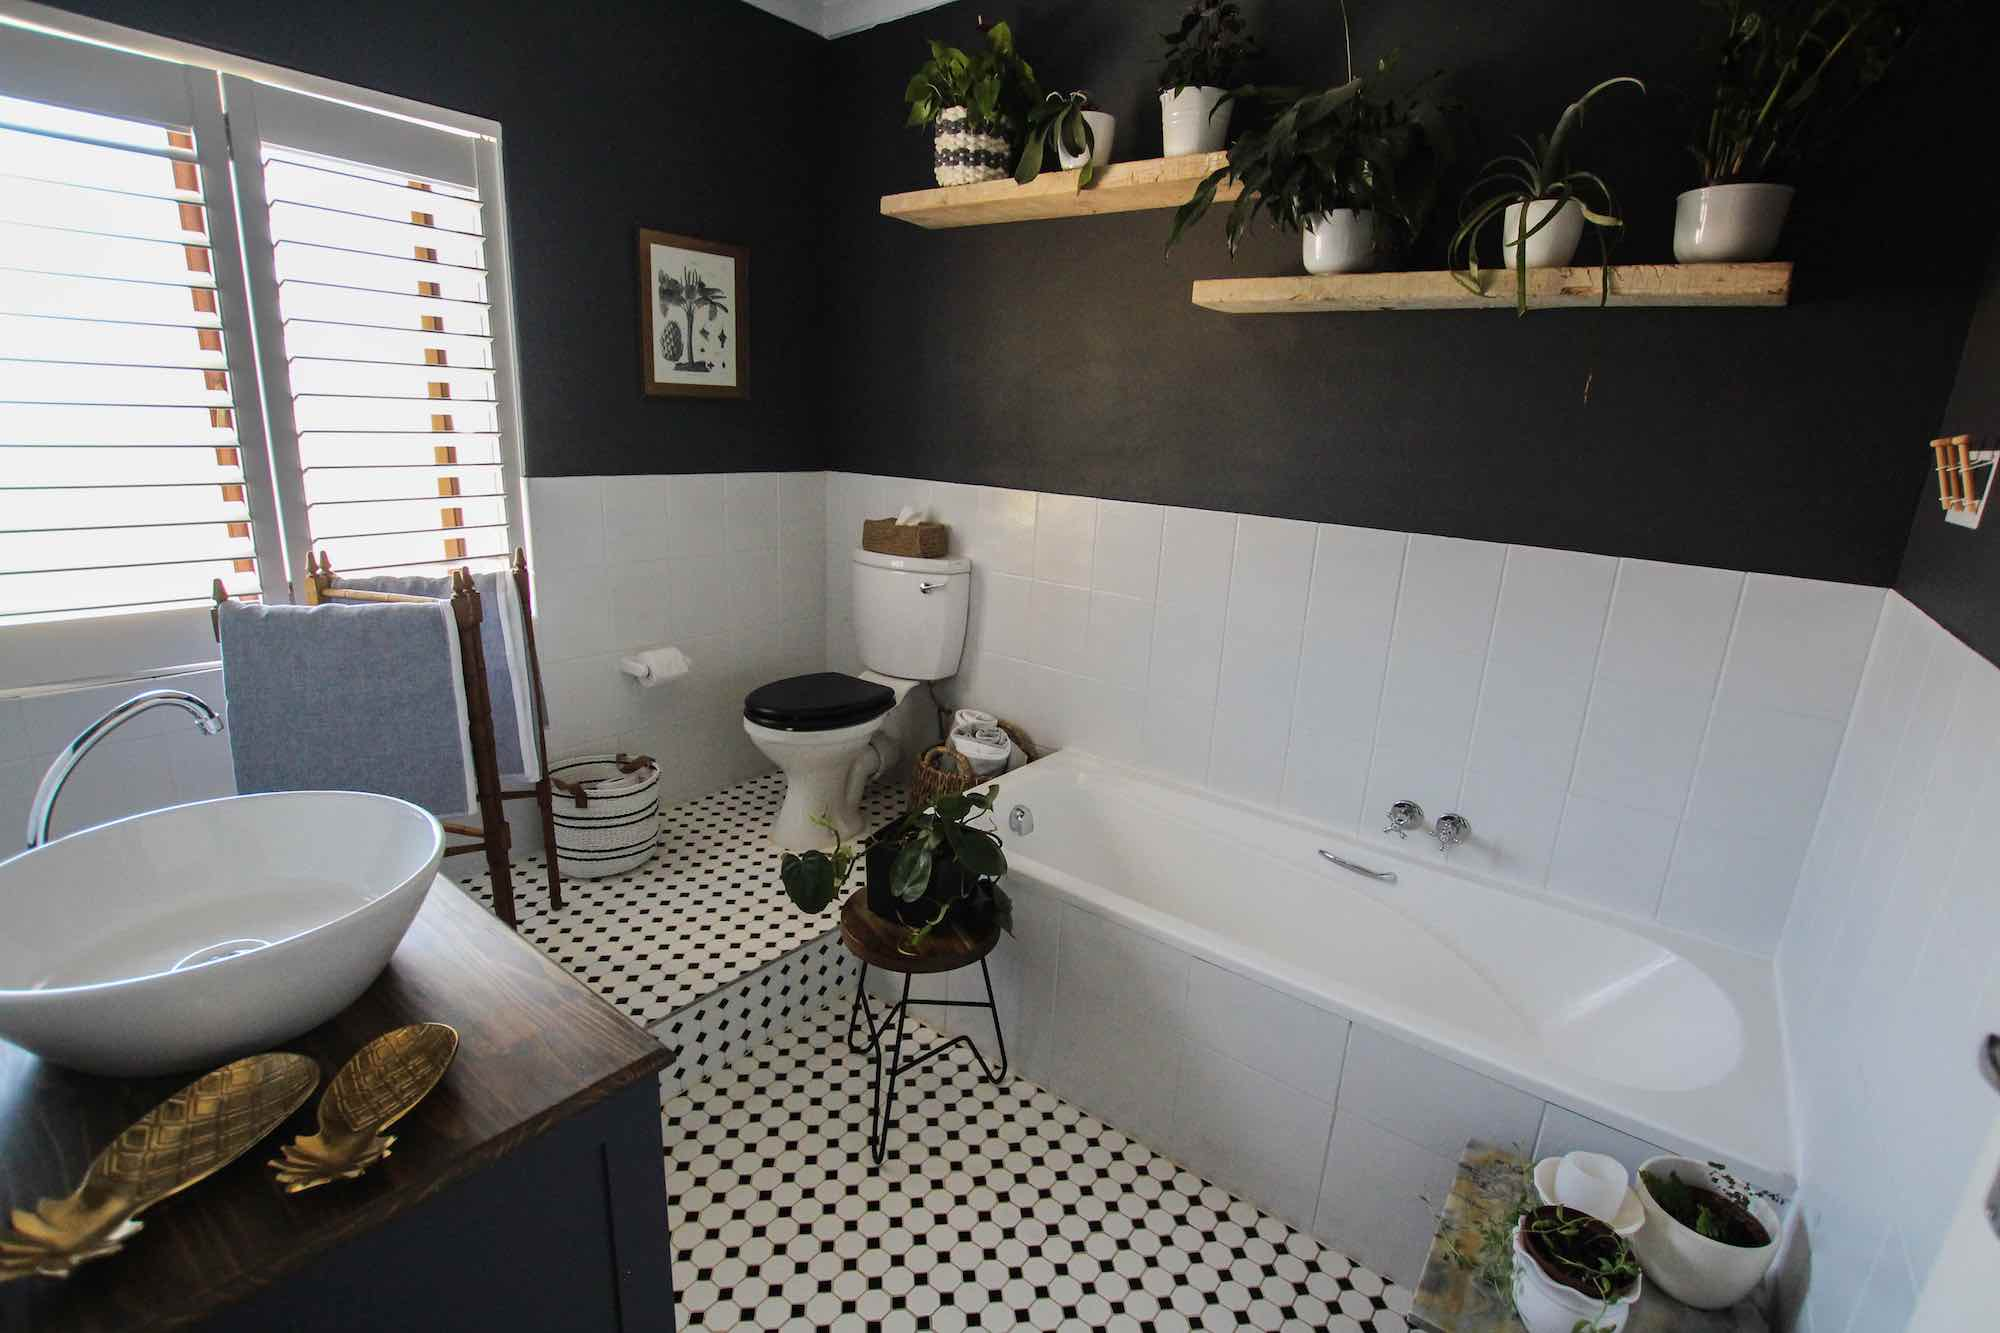 Bathroom decorated with indoor plants, wood furniture and decor accessories